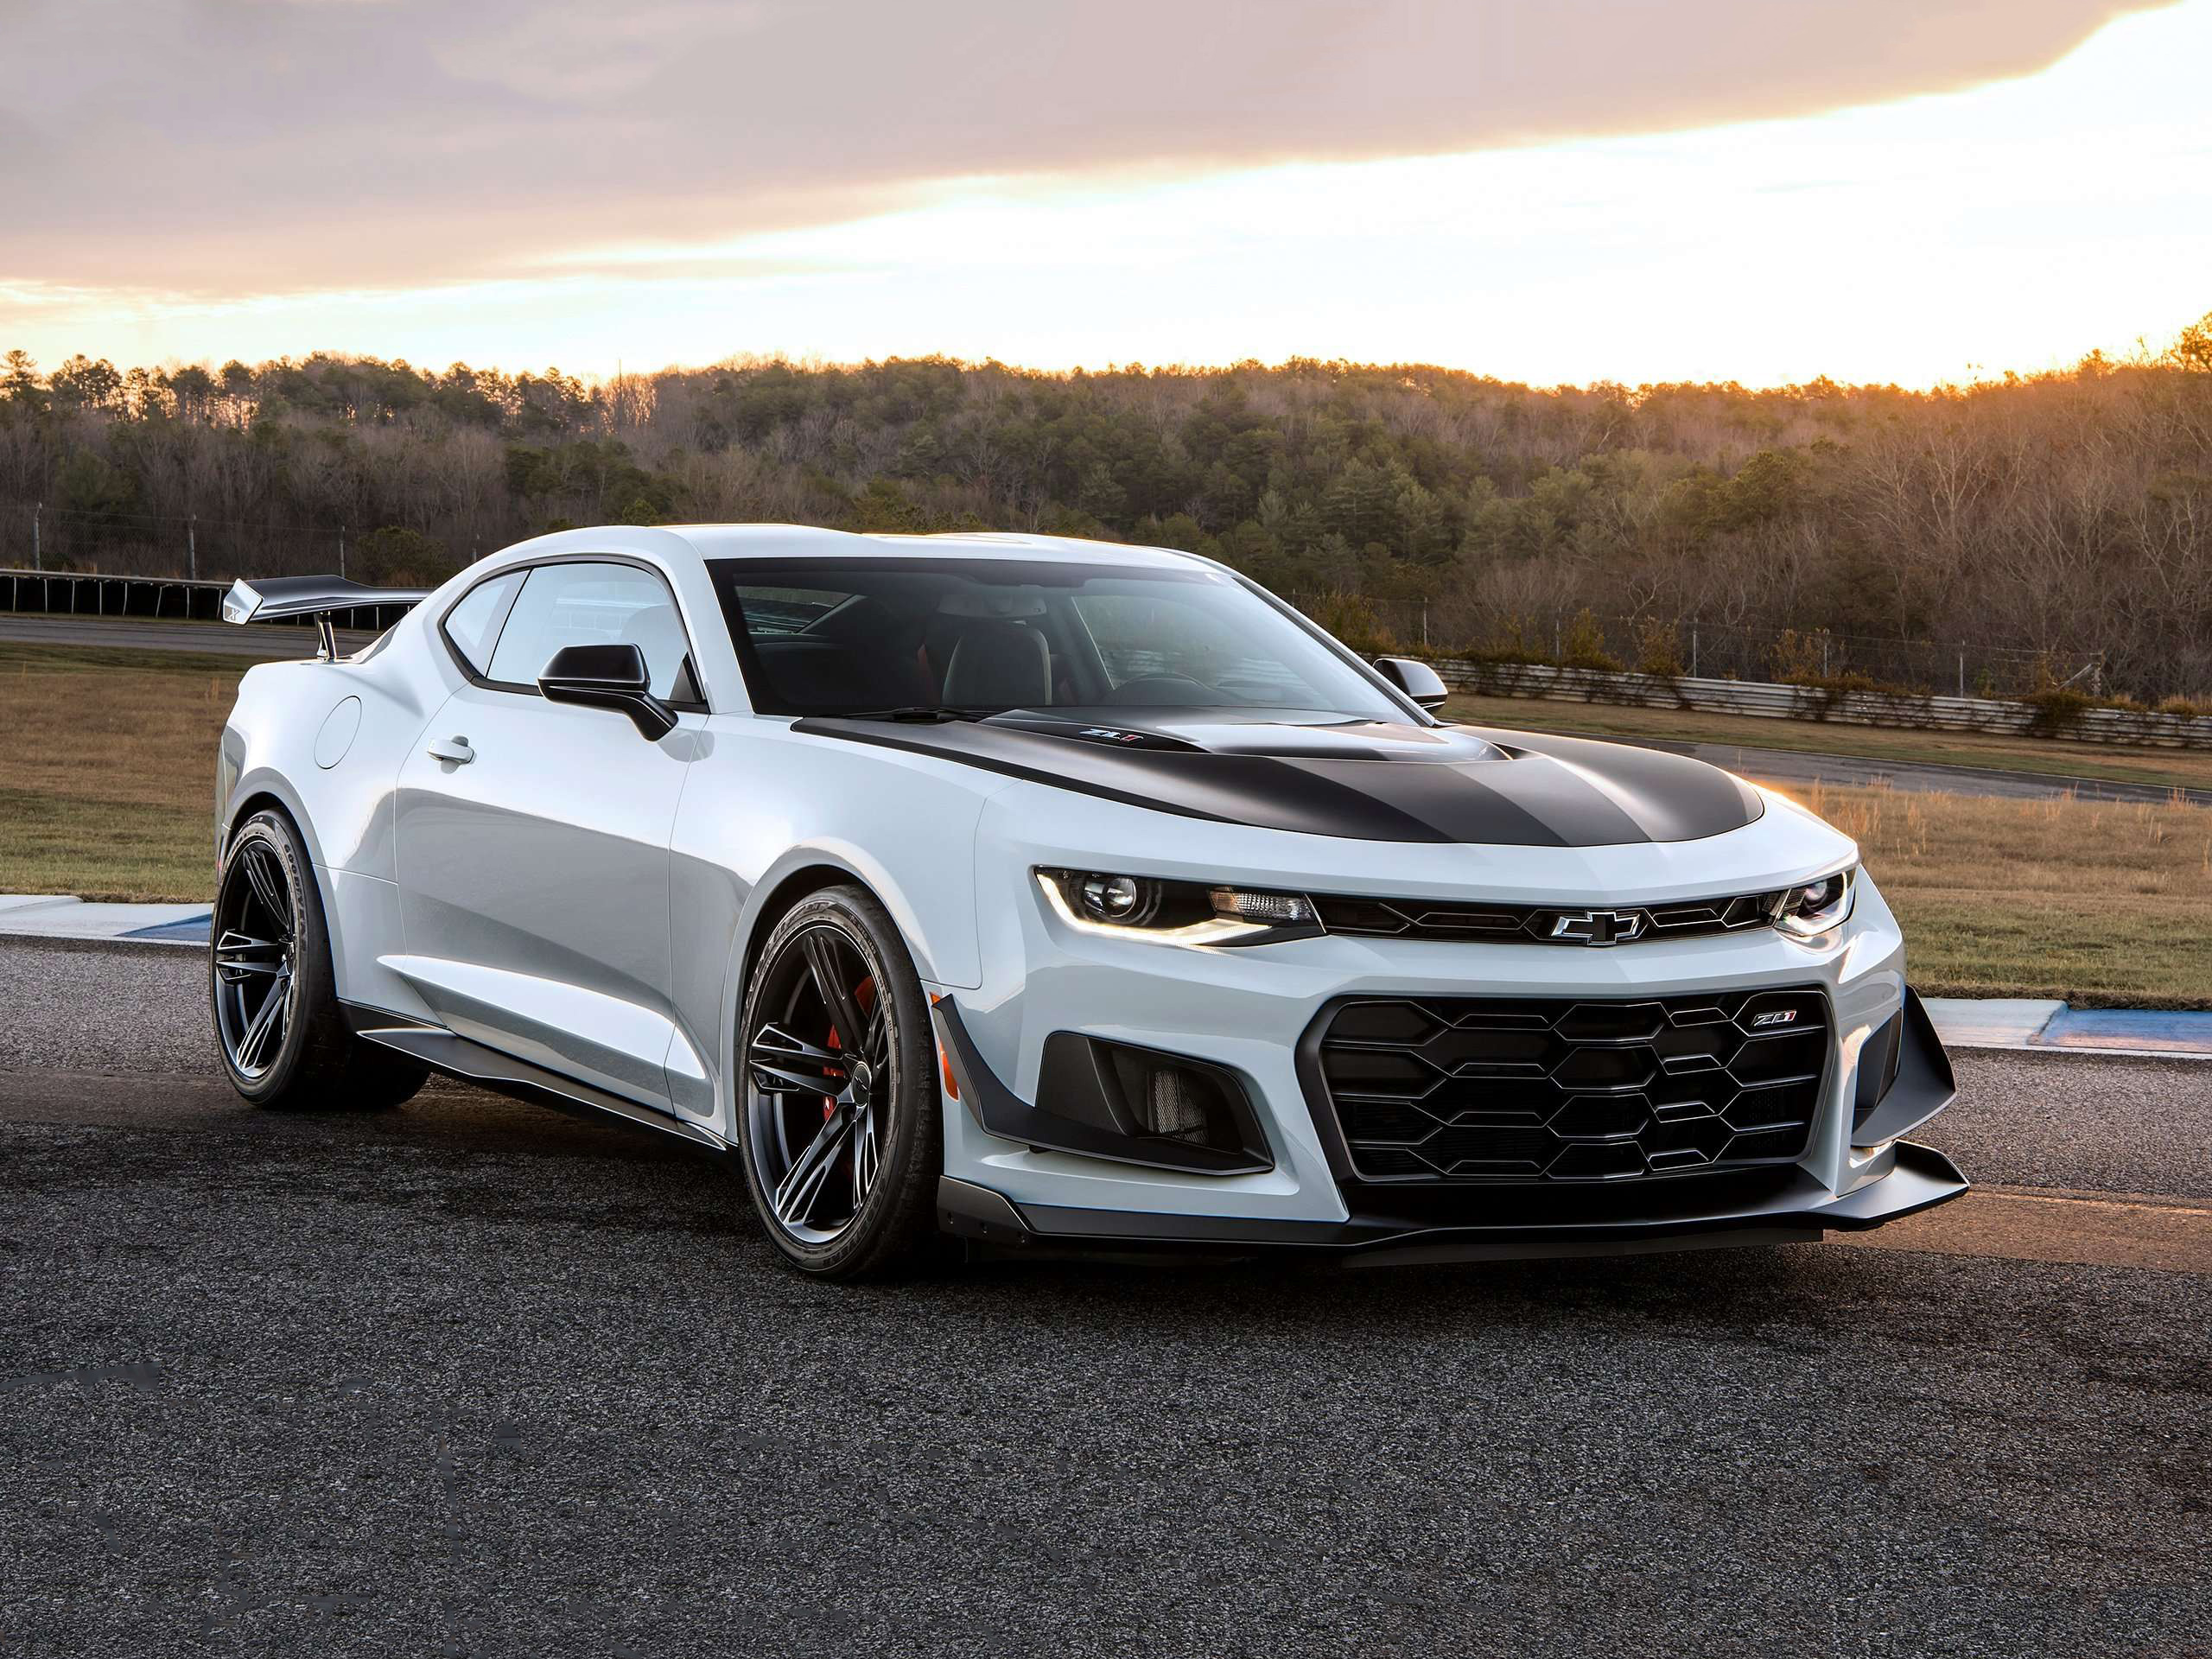 2018 Chevrolet Camaro Zl1 1le Hd Cars 4k Wallpapers Images